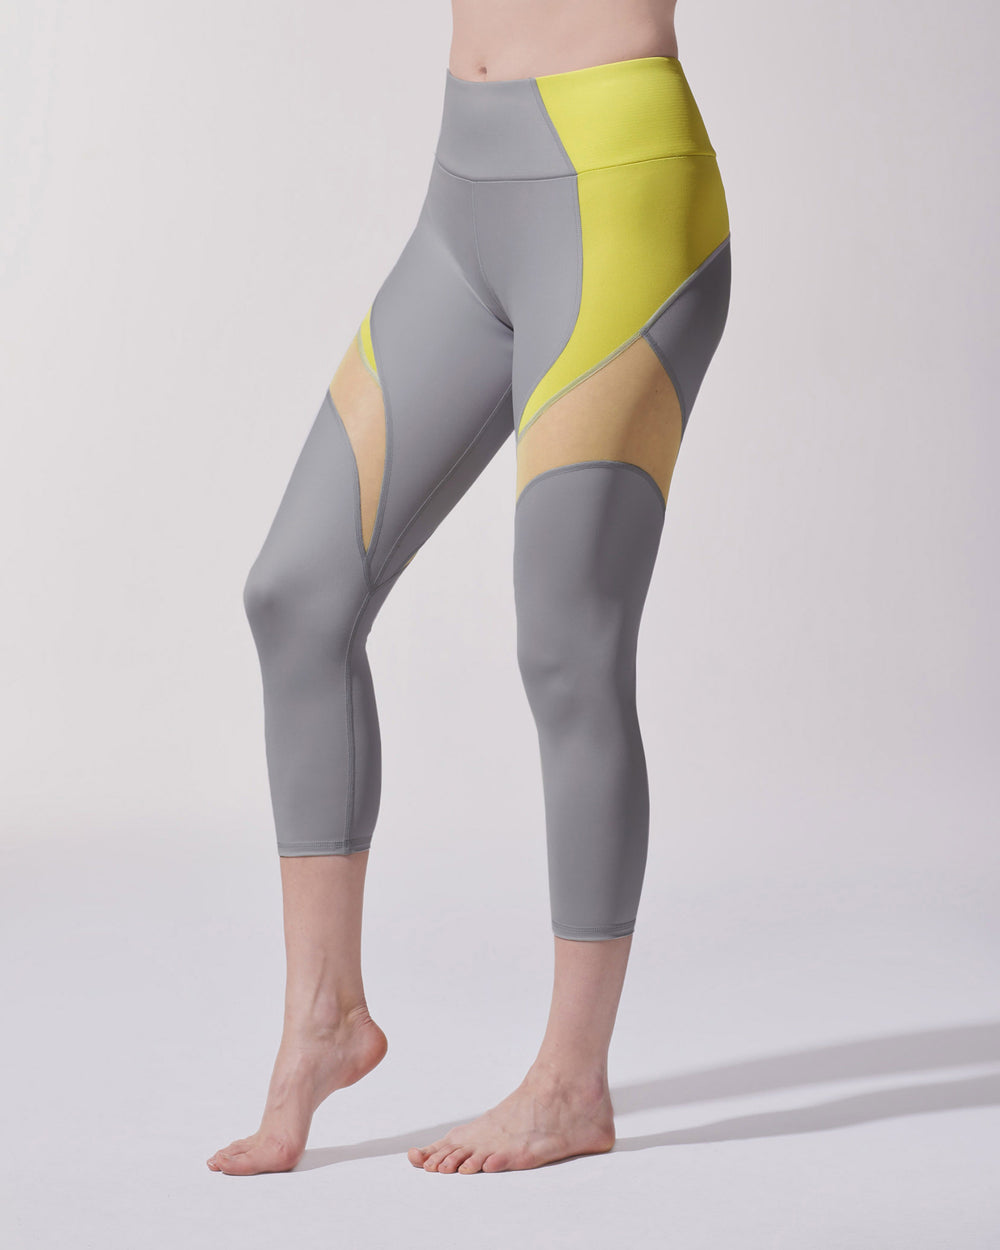 Glow Crop Legging - Platinum/Acid Yellow